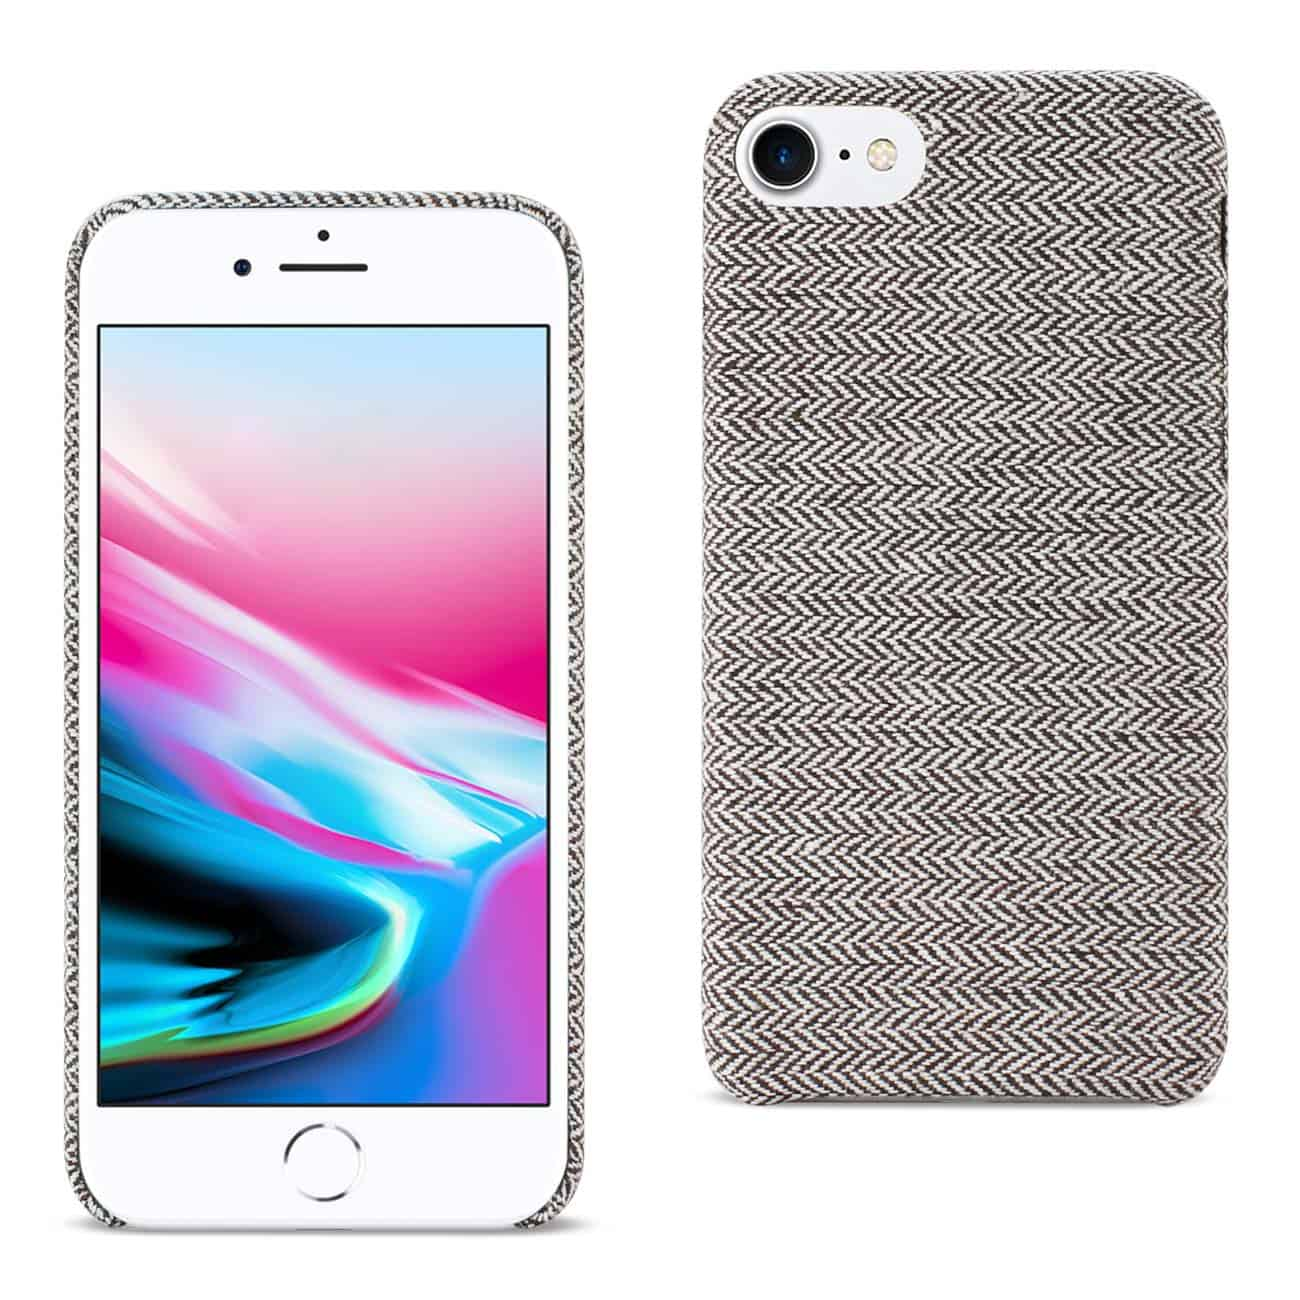 IPHONE 8 HERRINGBONE FABRIC IN DARK GRAY